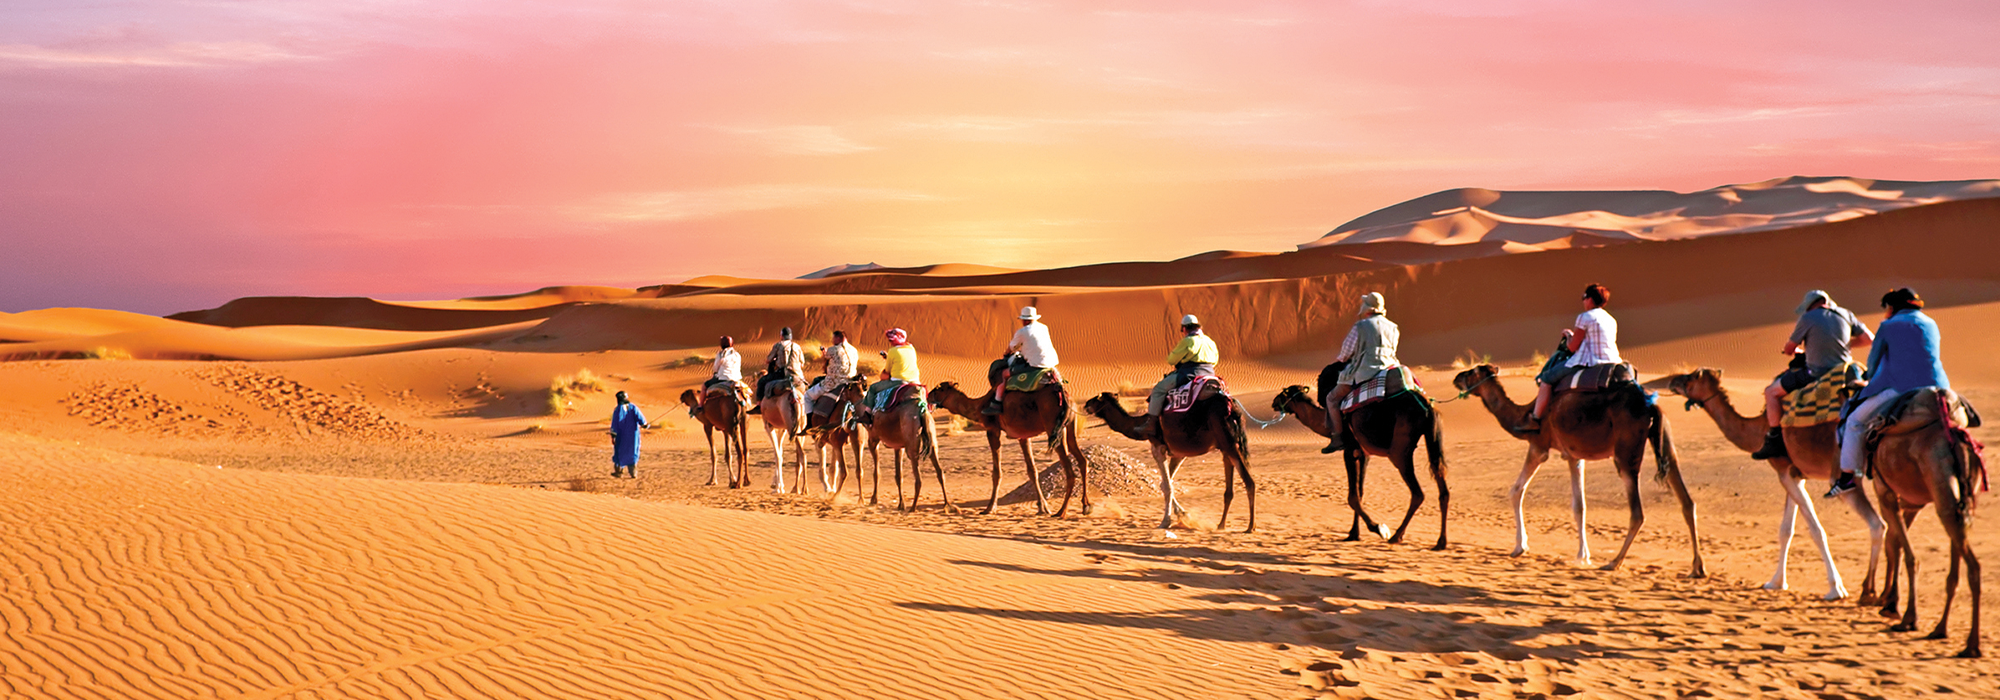 Travelers ride by camel during a trip to Morocco